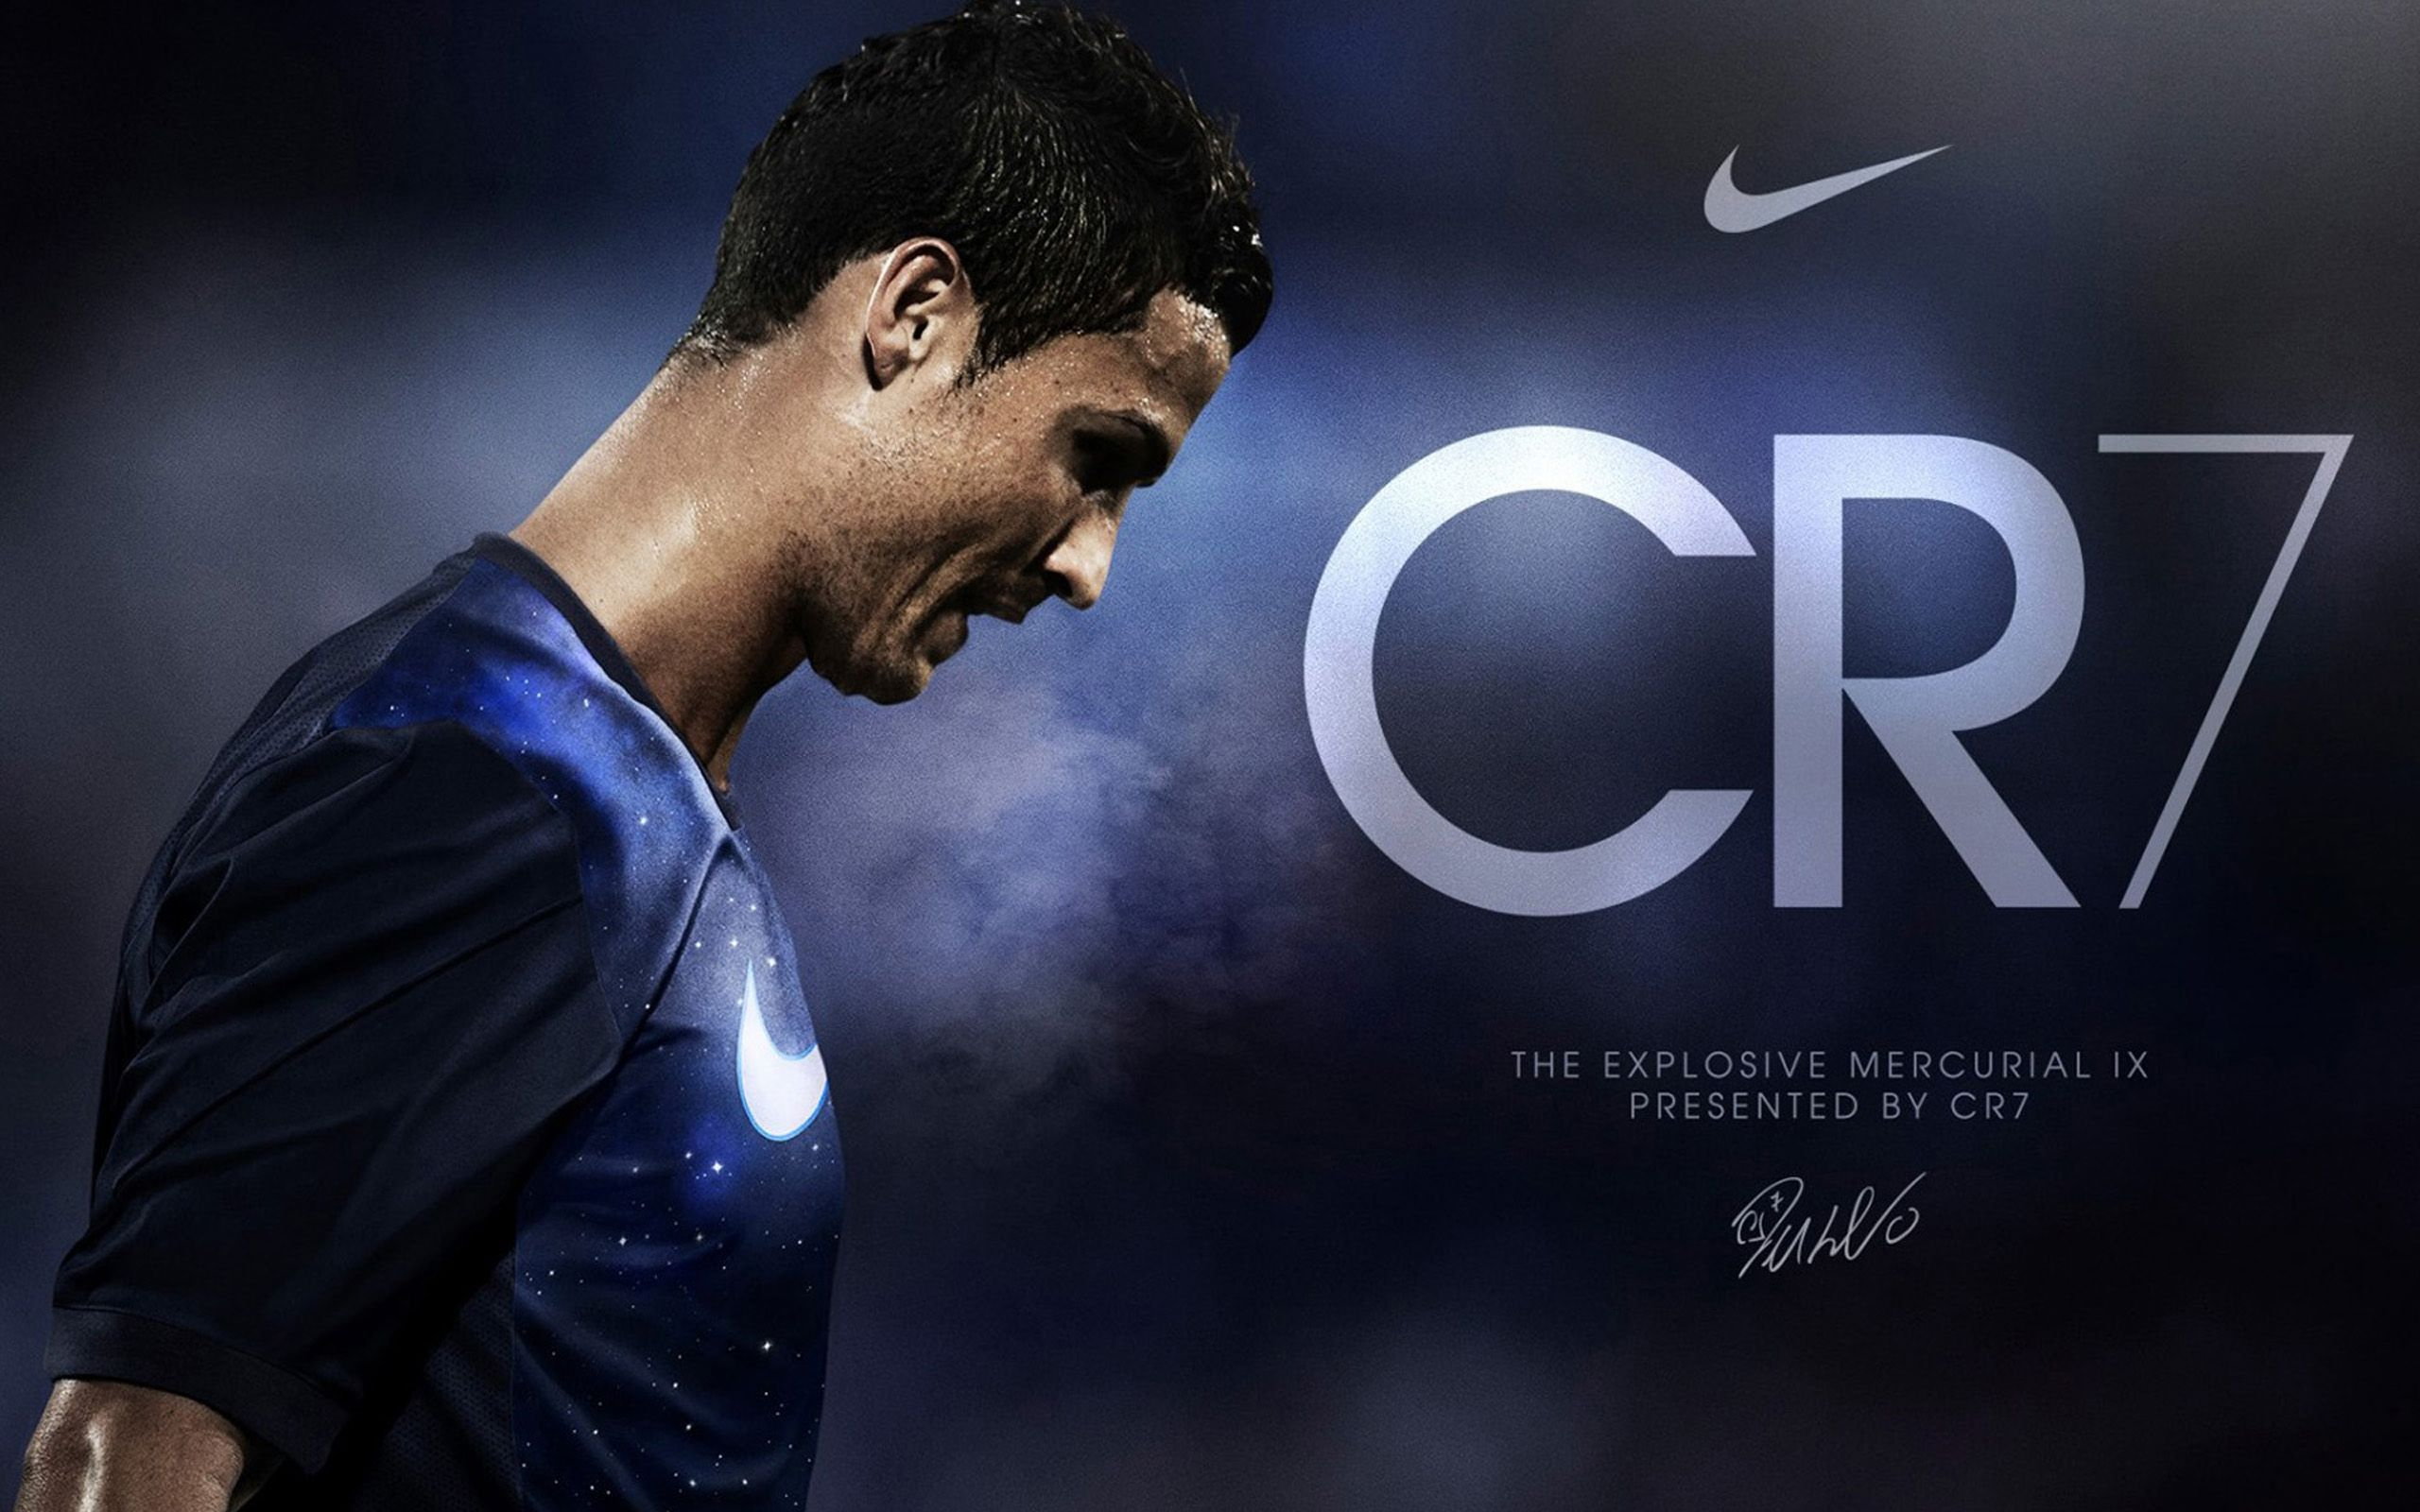 Cristiano Ronaldo 2015 Hd Wallpapers At Http Www Hdwallcloud Com Cristiano Ro Ronaldo Wallpapers Cristiano Ronaldo Wallpapers Cristiano Ronaldo Hd Wallpapers